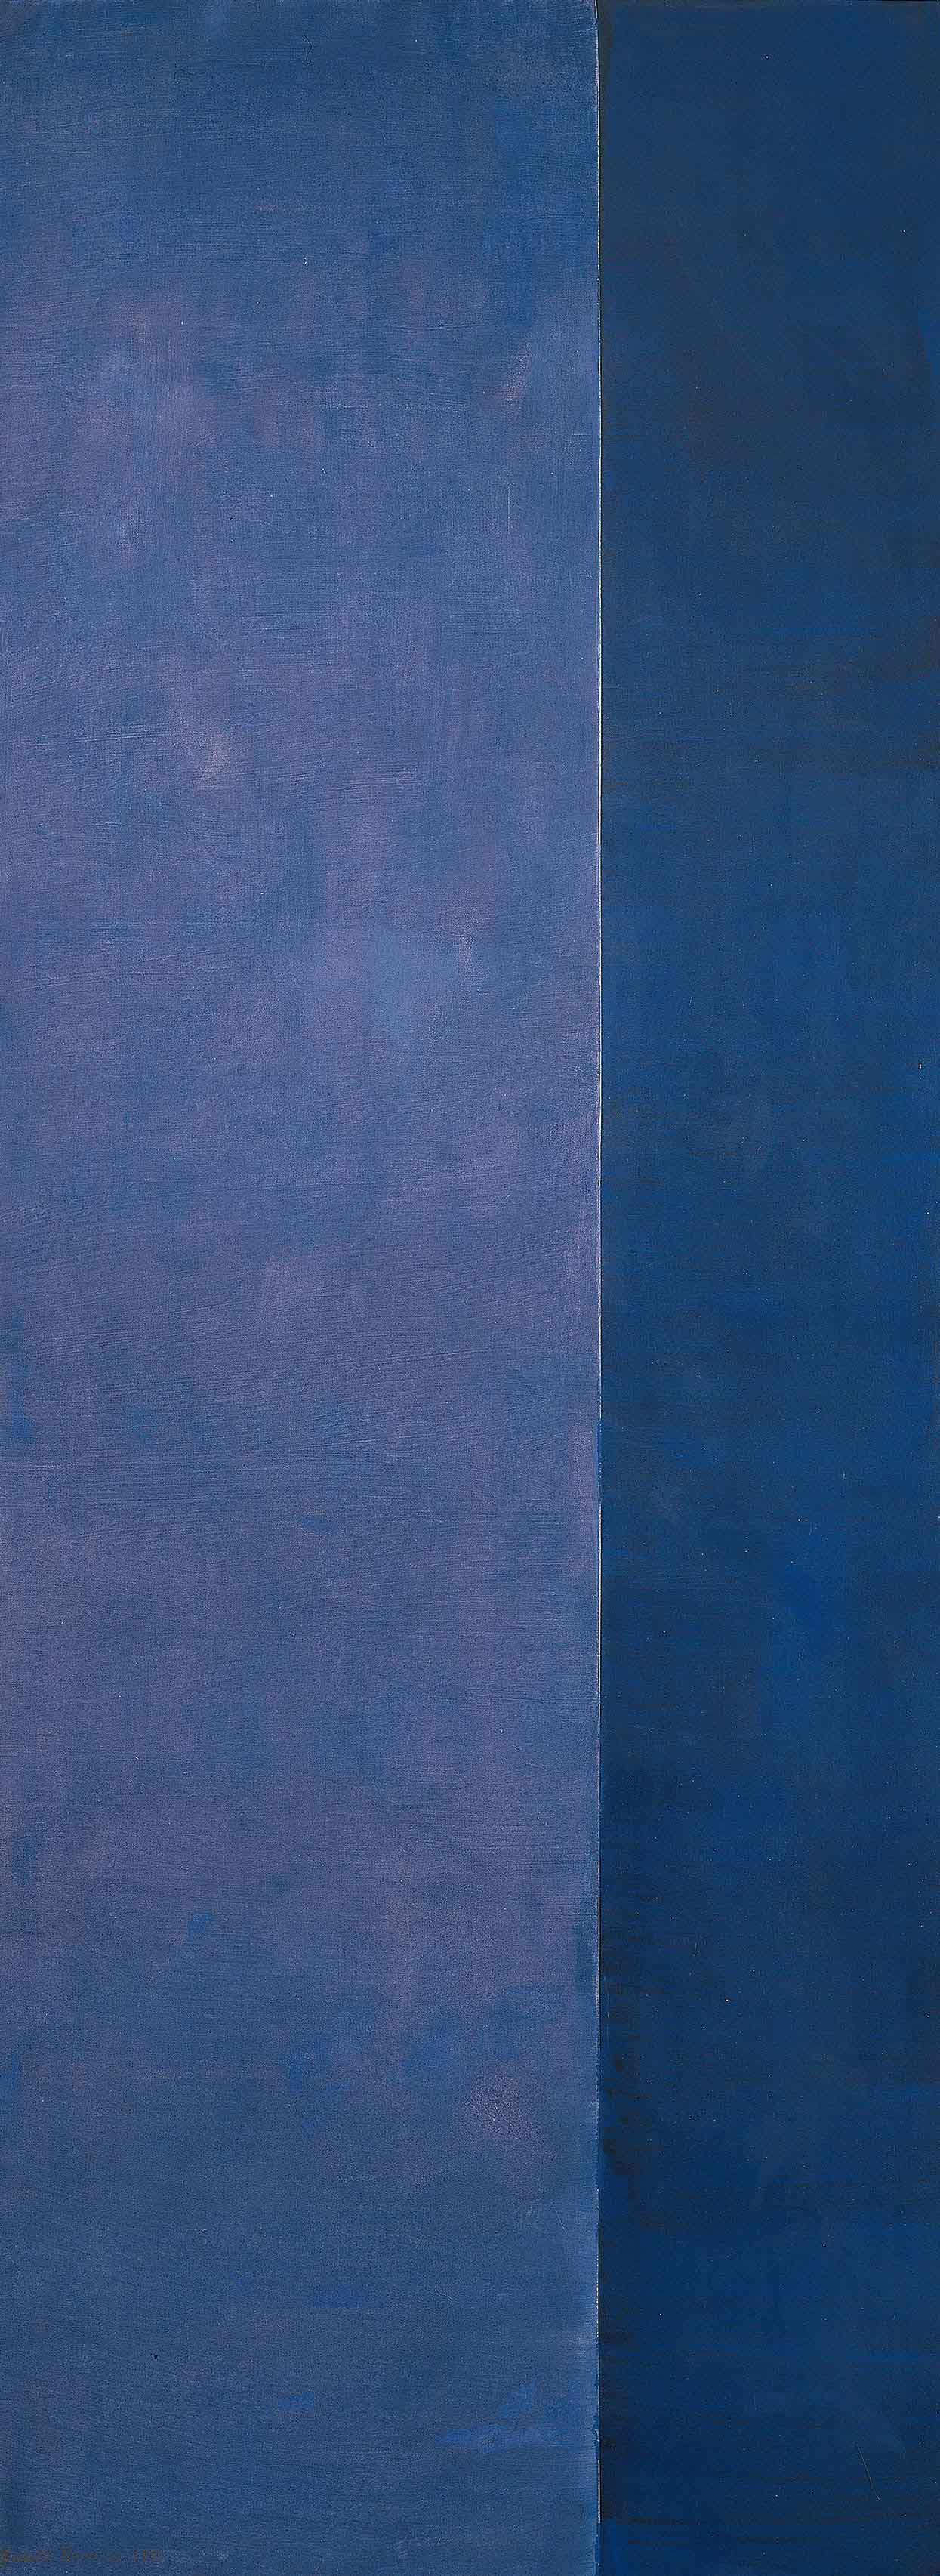 Barnett Newman, Ulysses, 1952, oil on canvas, 132 × 50 inches (© Barnett Newman